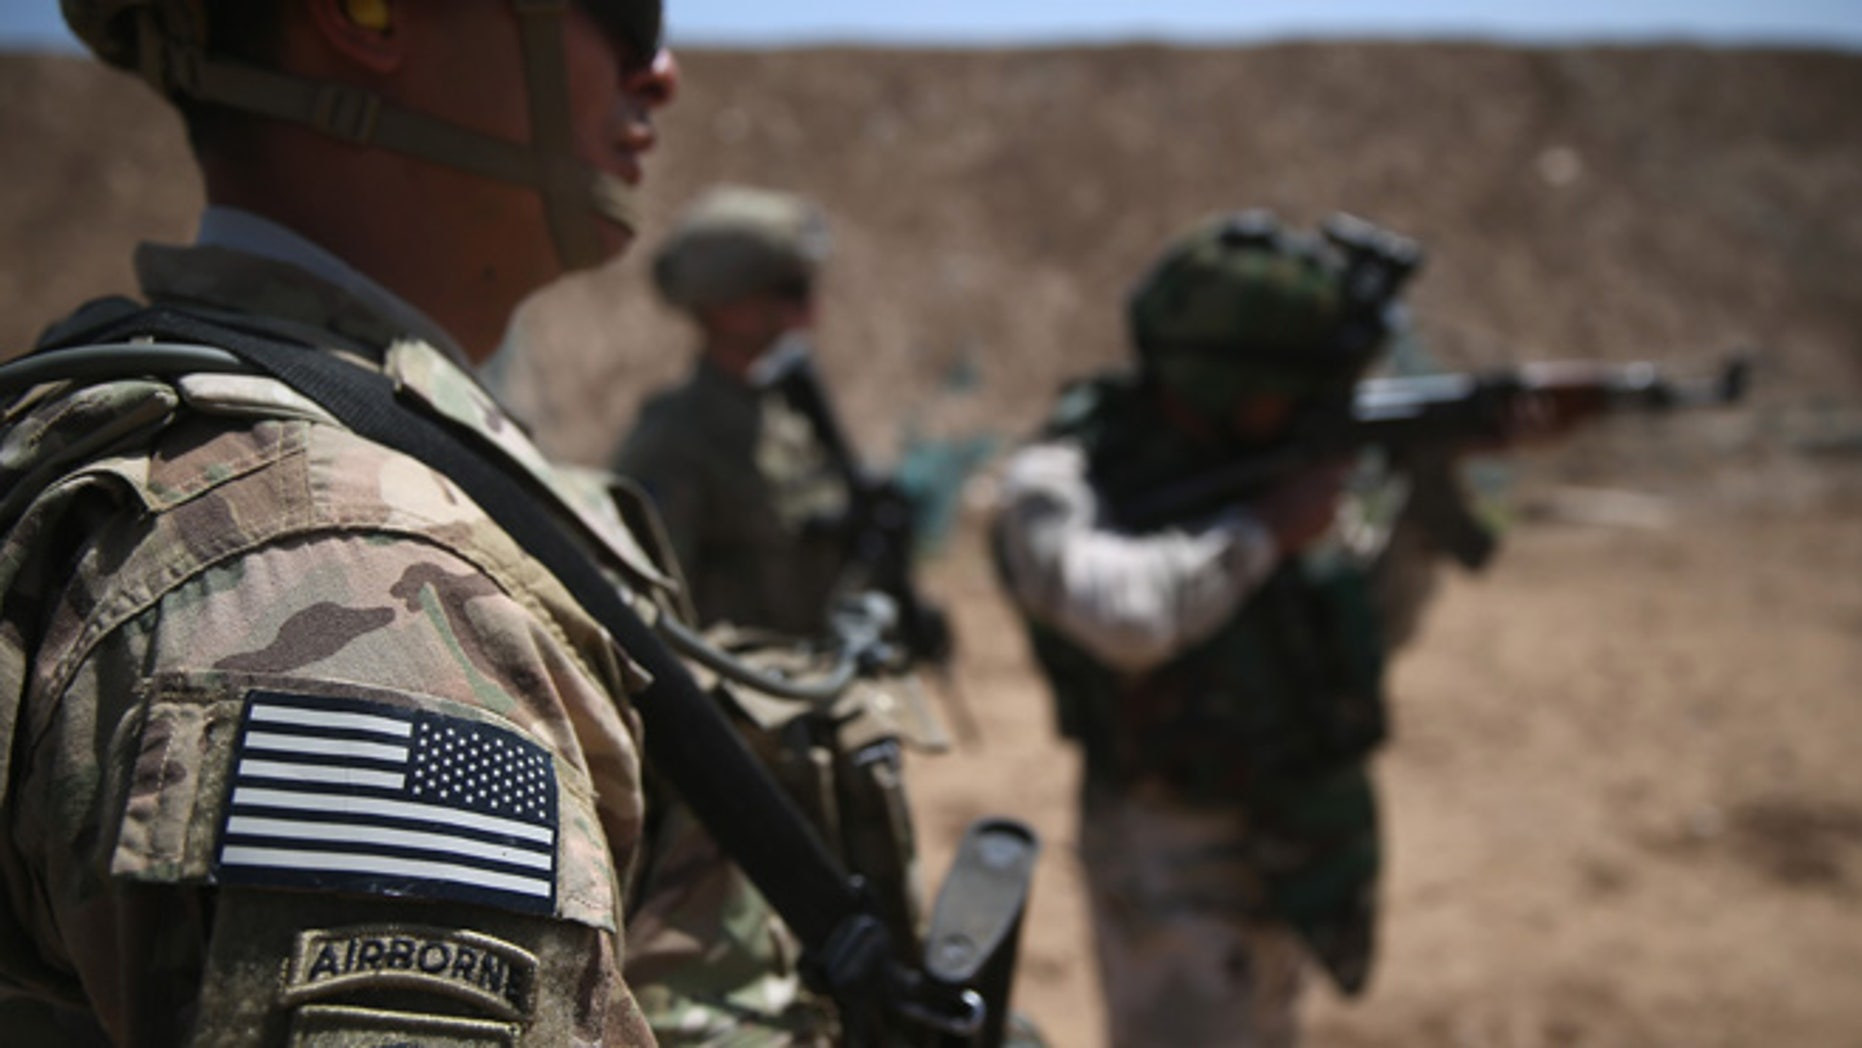 TAJI, IRAQ - APRIL 12:  U.S. Army trainers watch as an Iraqi recruit fires at a military base on April 12, 2015 in Taji, Iraq. U.S. forces, currently operating in 5 large bases throught the country, are training thousands of Iraqi Army combat troops, trying to rebuild a force they had origninally trained before the U.S. withdrawal from Iraq in 2010. Members of the U.S. Army's 5-73 CAV, 3BCT, 82nd Airborne Division are teaching members of the newly-formed 15th Division of the Iraqi Army, as the Iraqi government launches offensives to try to recover territory lost to ISIS last year.  (Photo by John Moore/Getty Images)